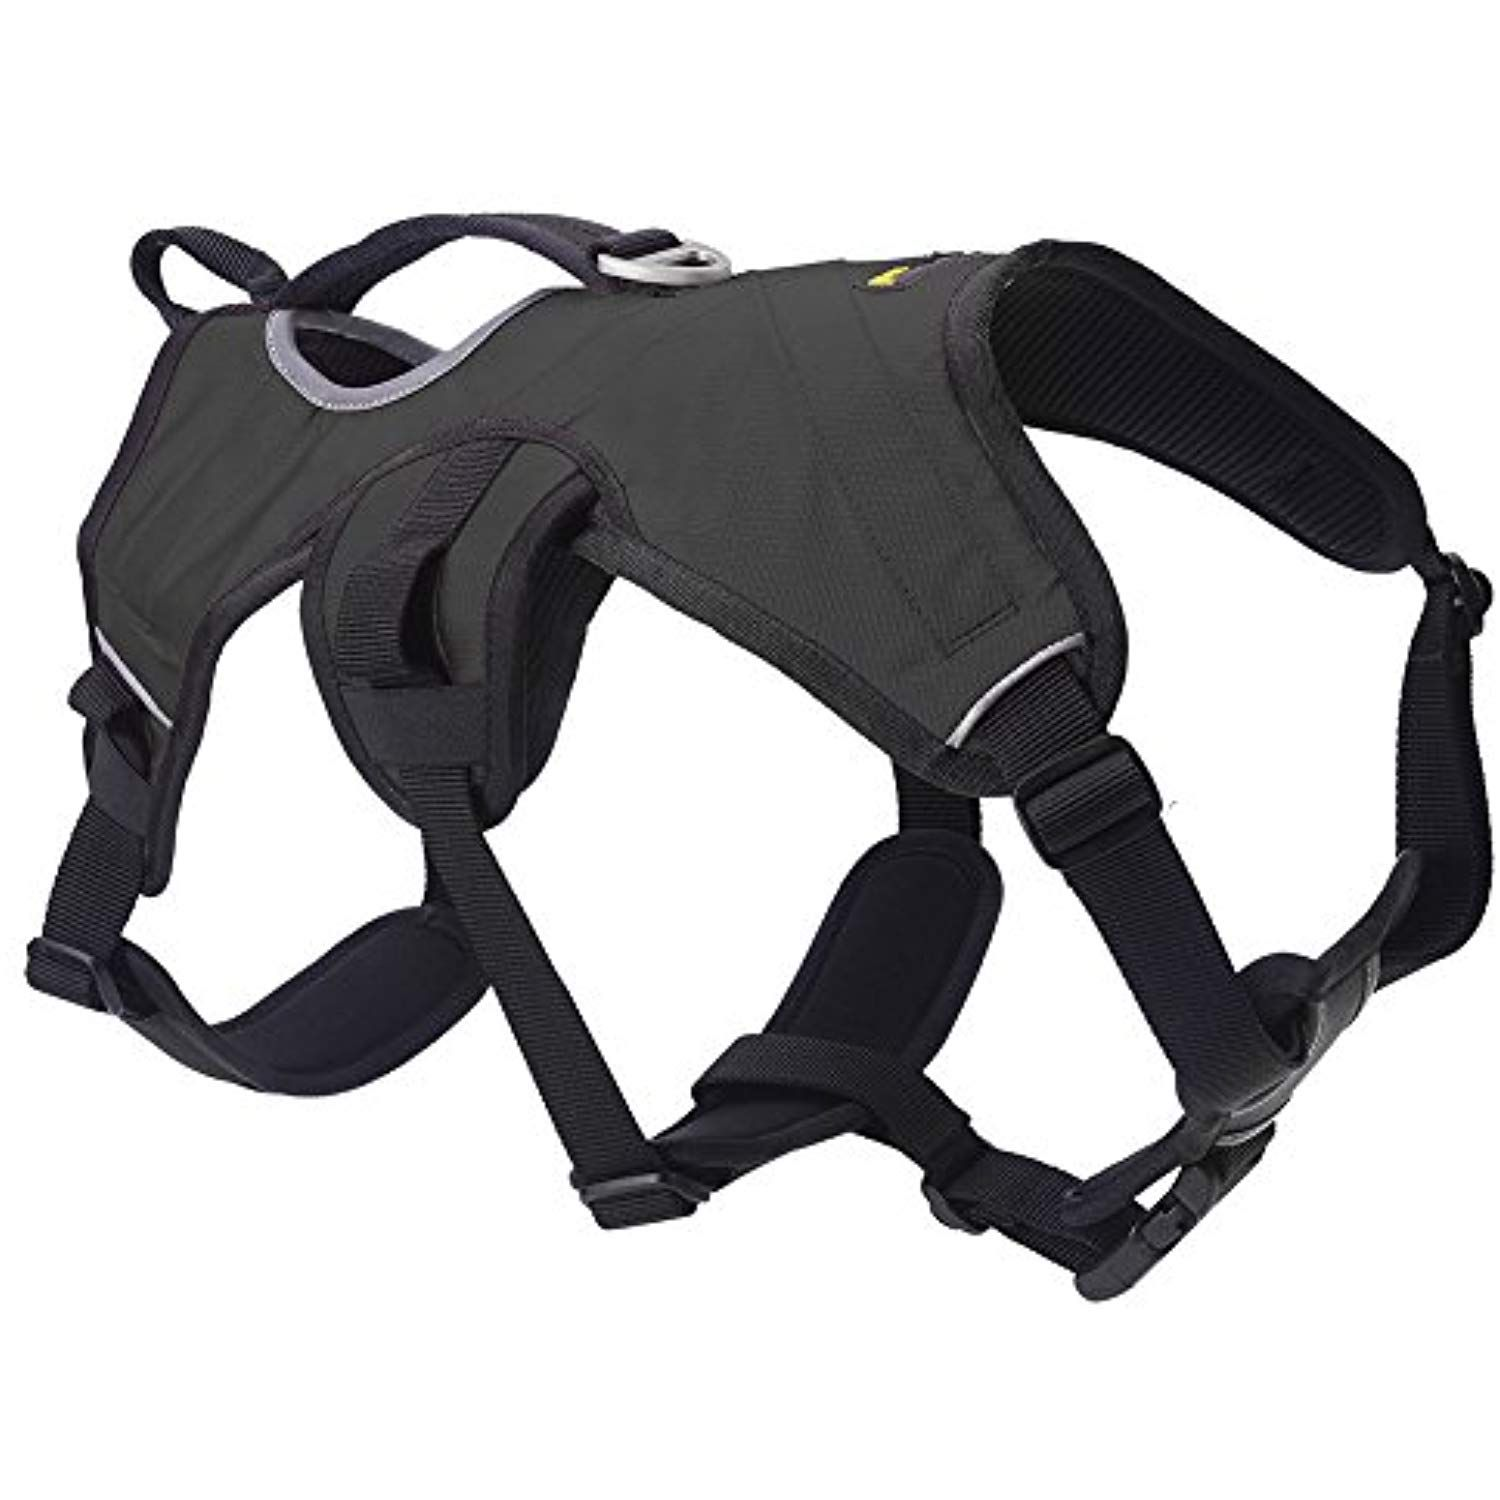 Escape Proof Large Dog Harness Outdoor Reflective Adjustable